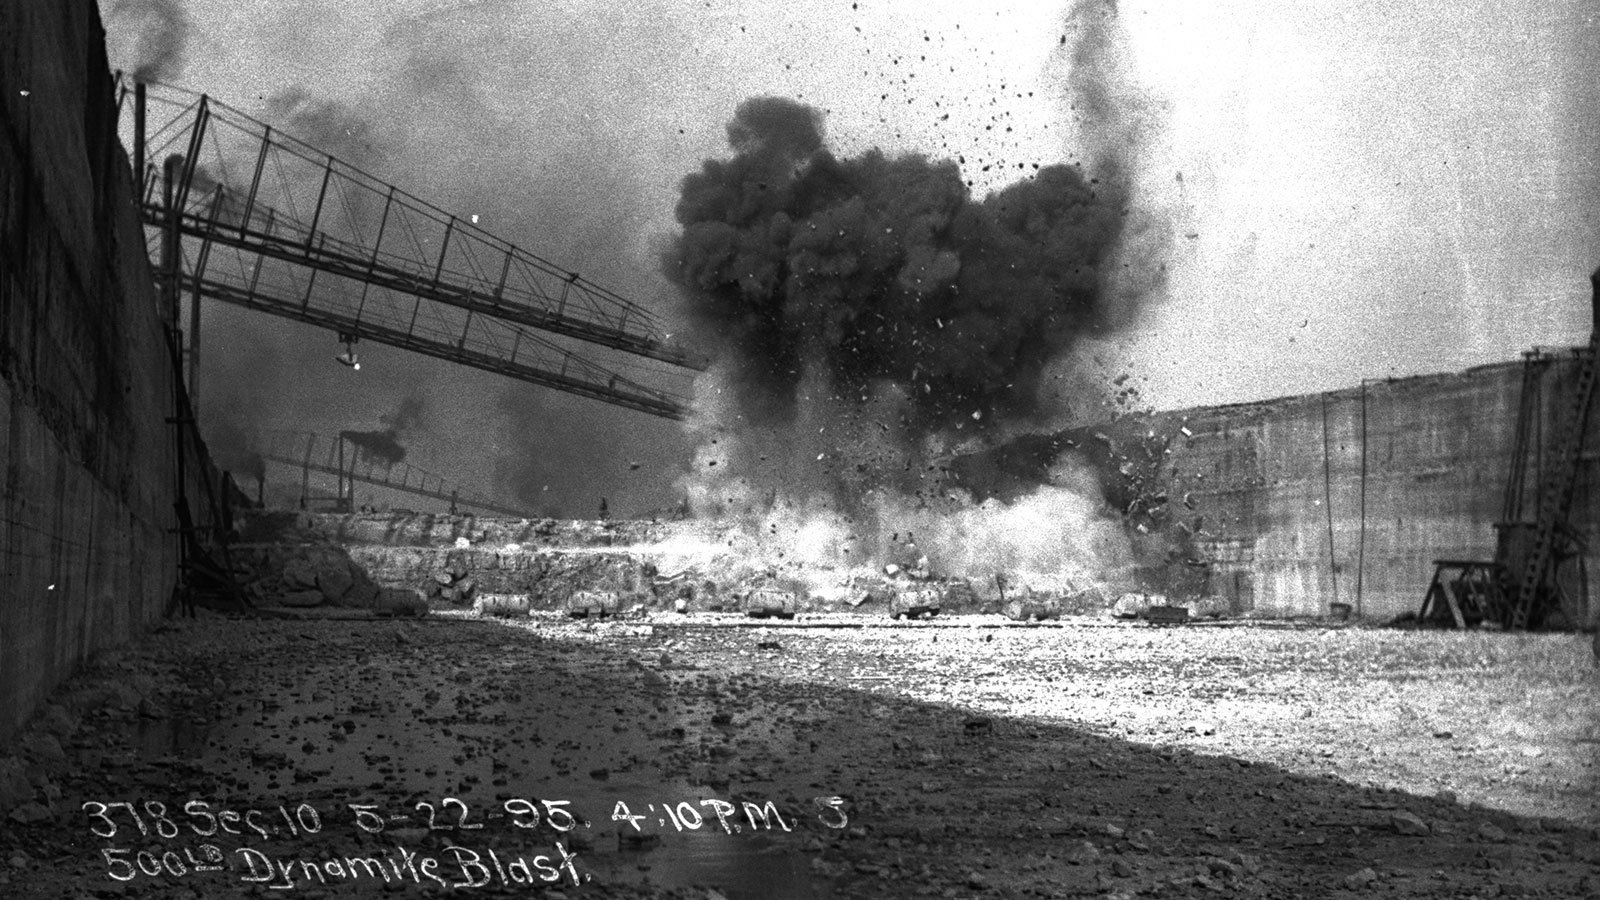 Dynamite blasting through bedrock during the construction of the Chicago Sanitary and Ship Canal on May 22, 1895